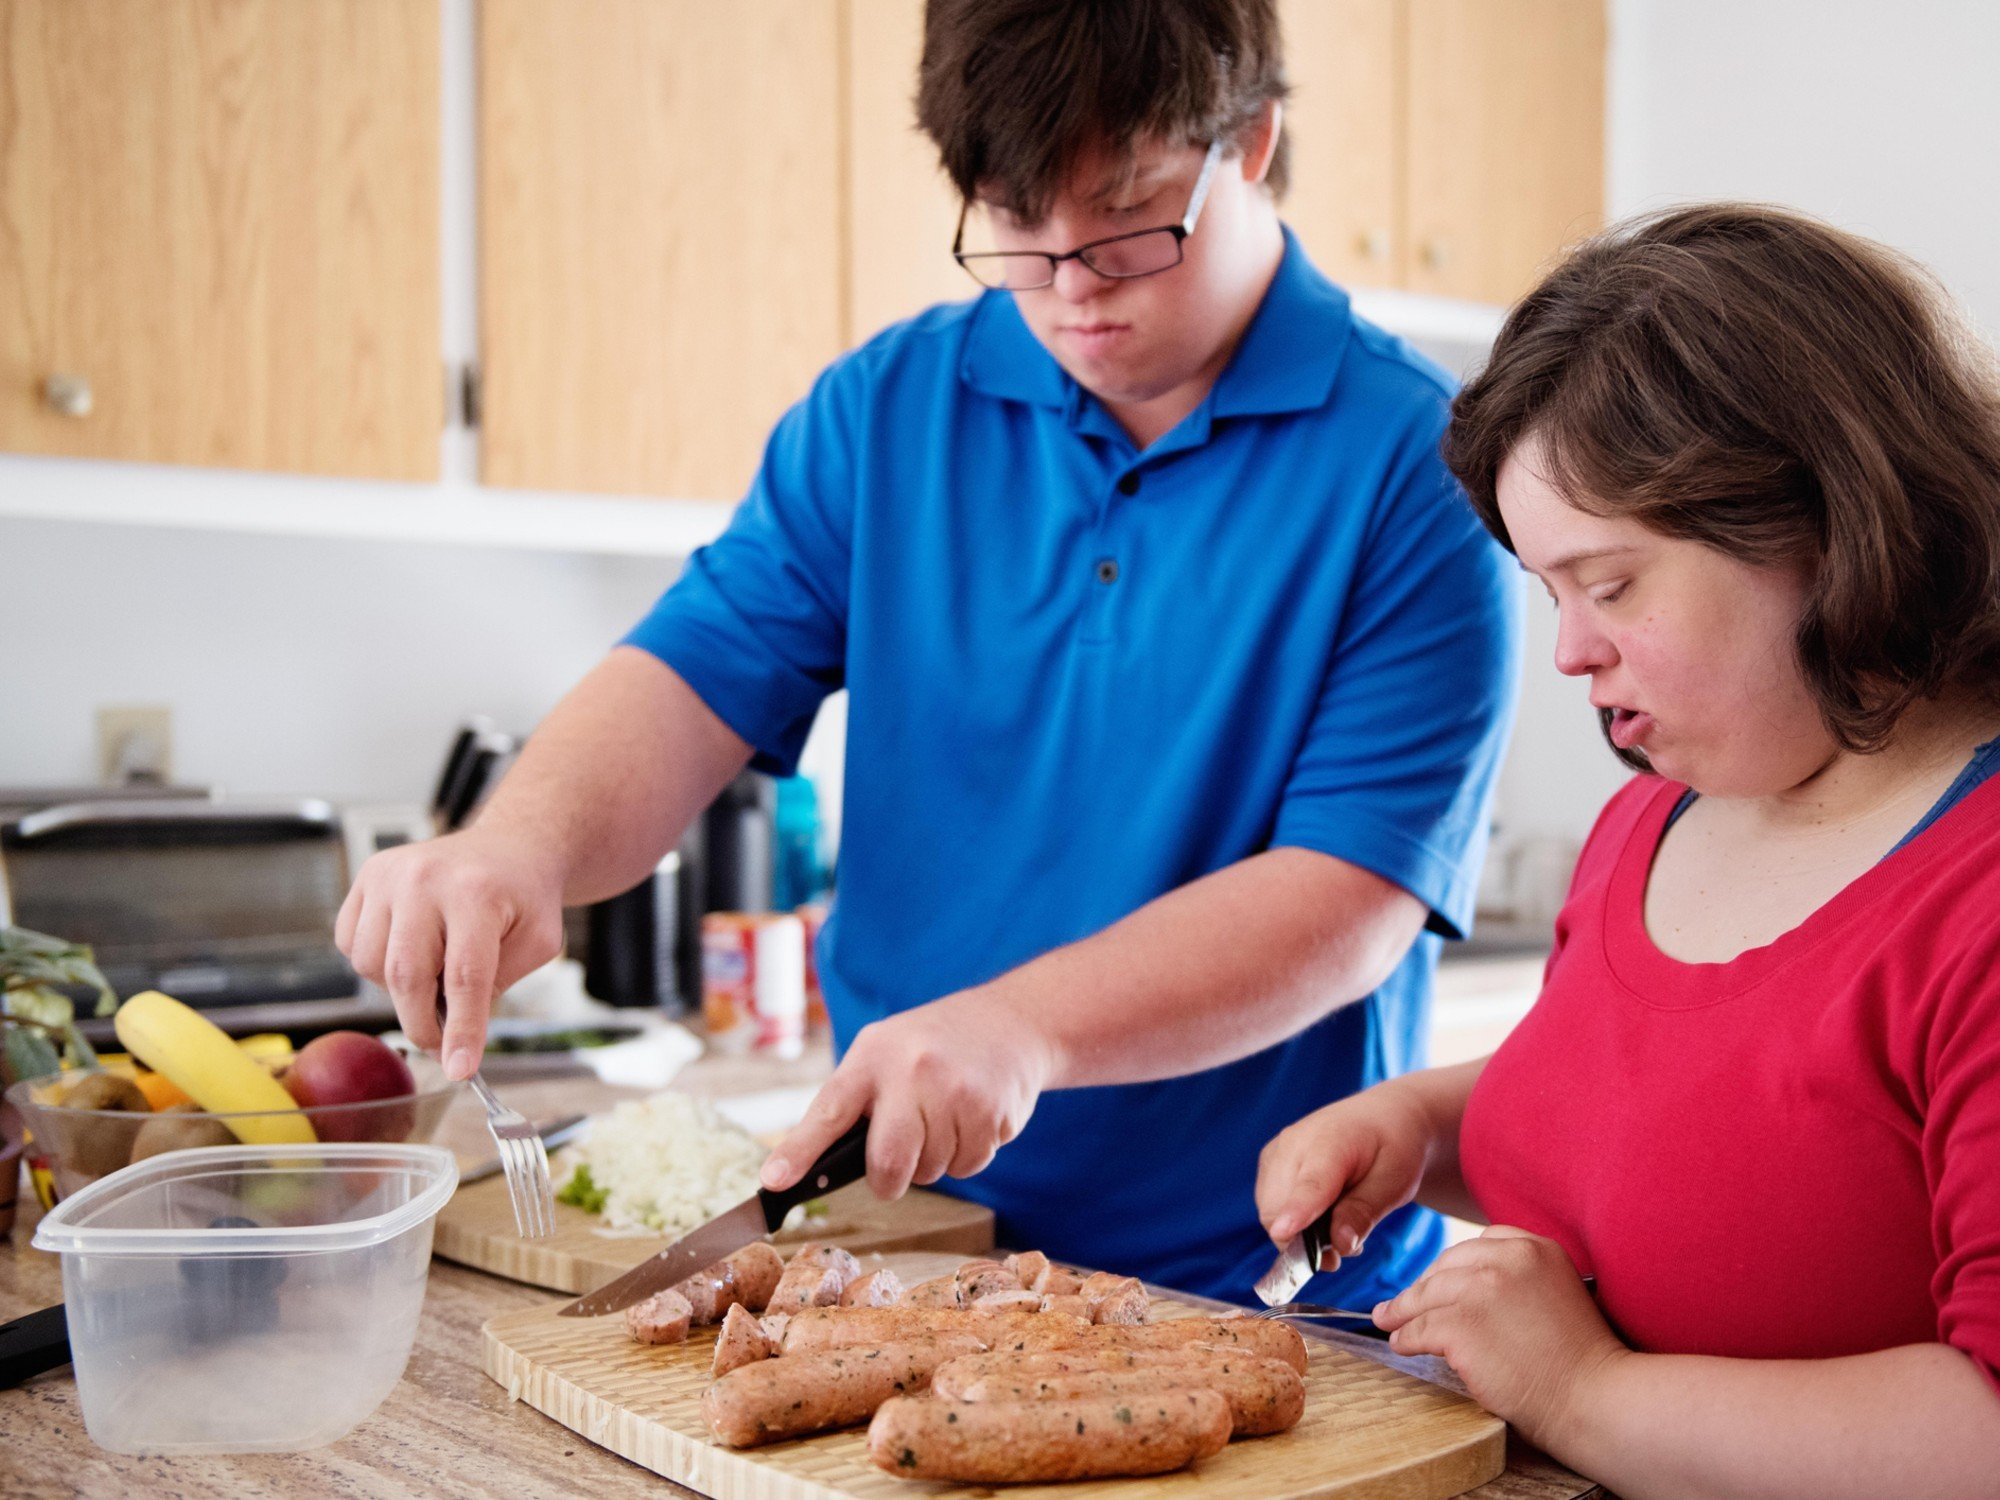 Diet and nutrition support through the NDIS